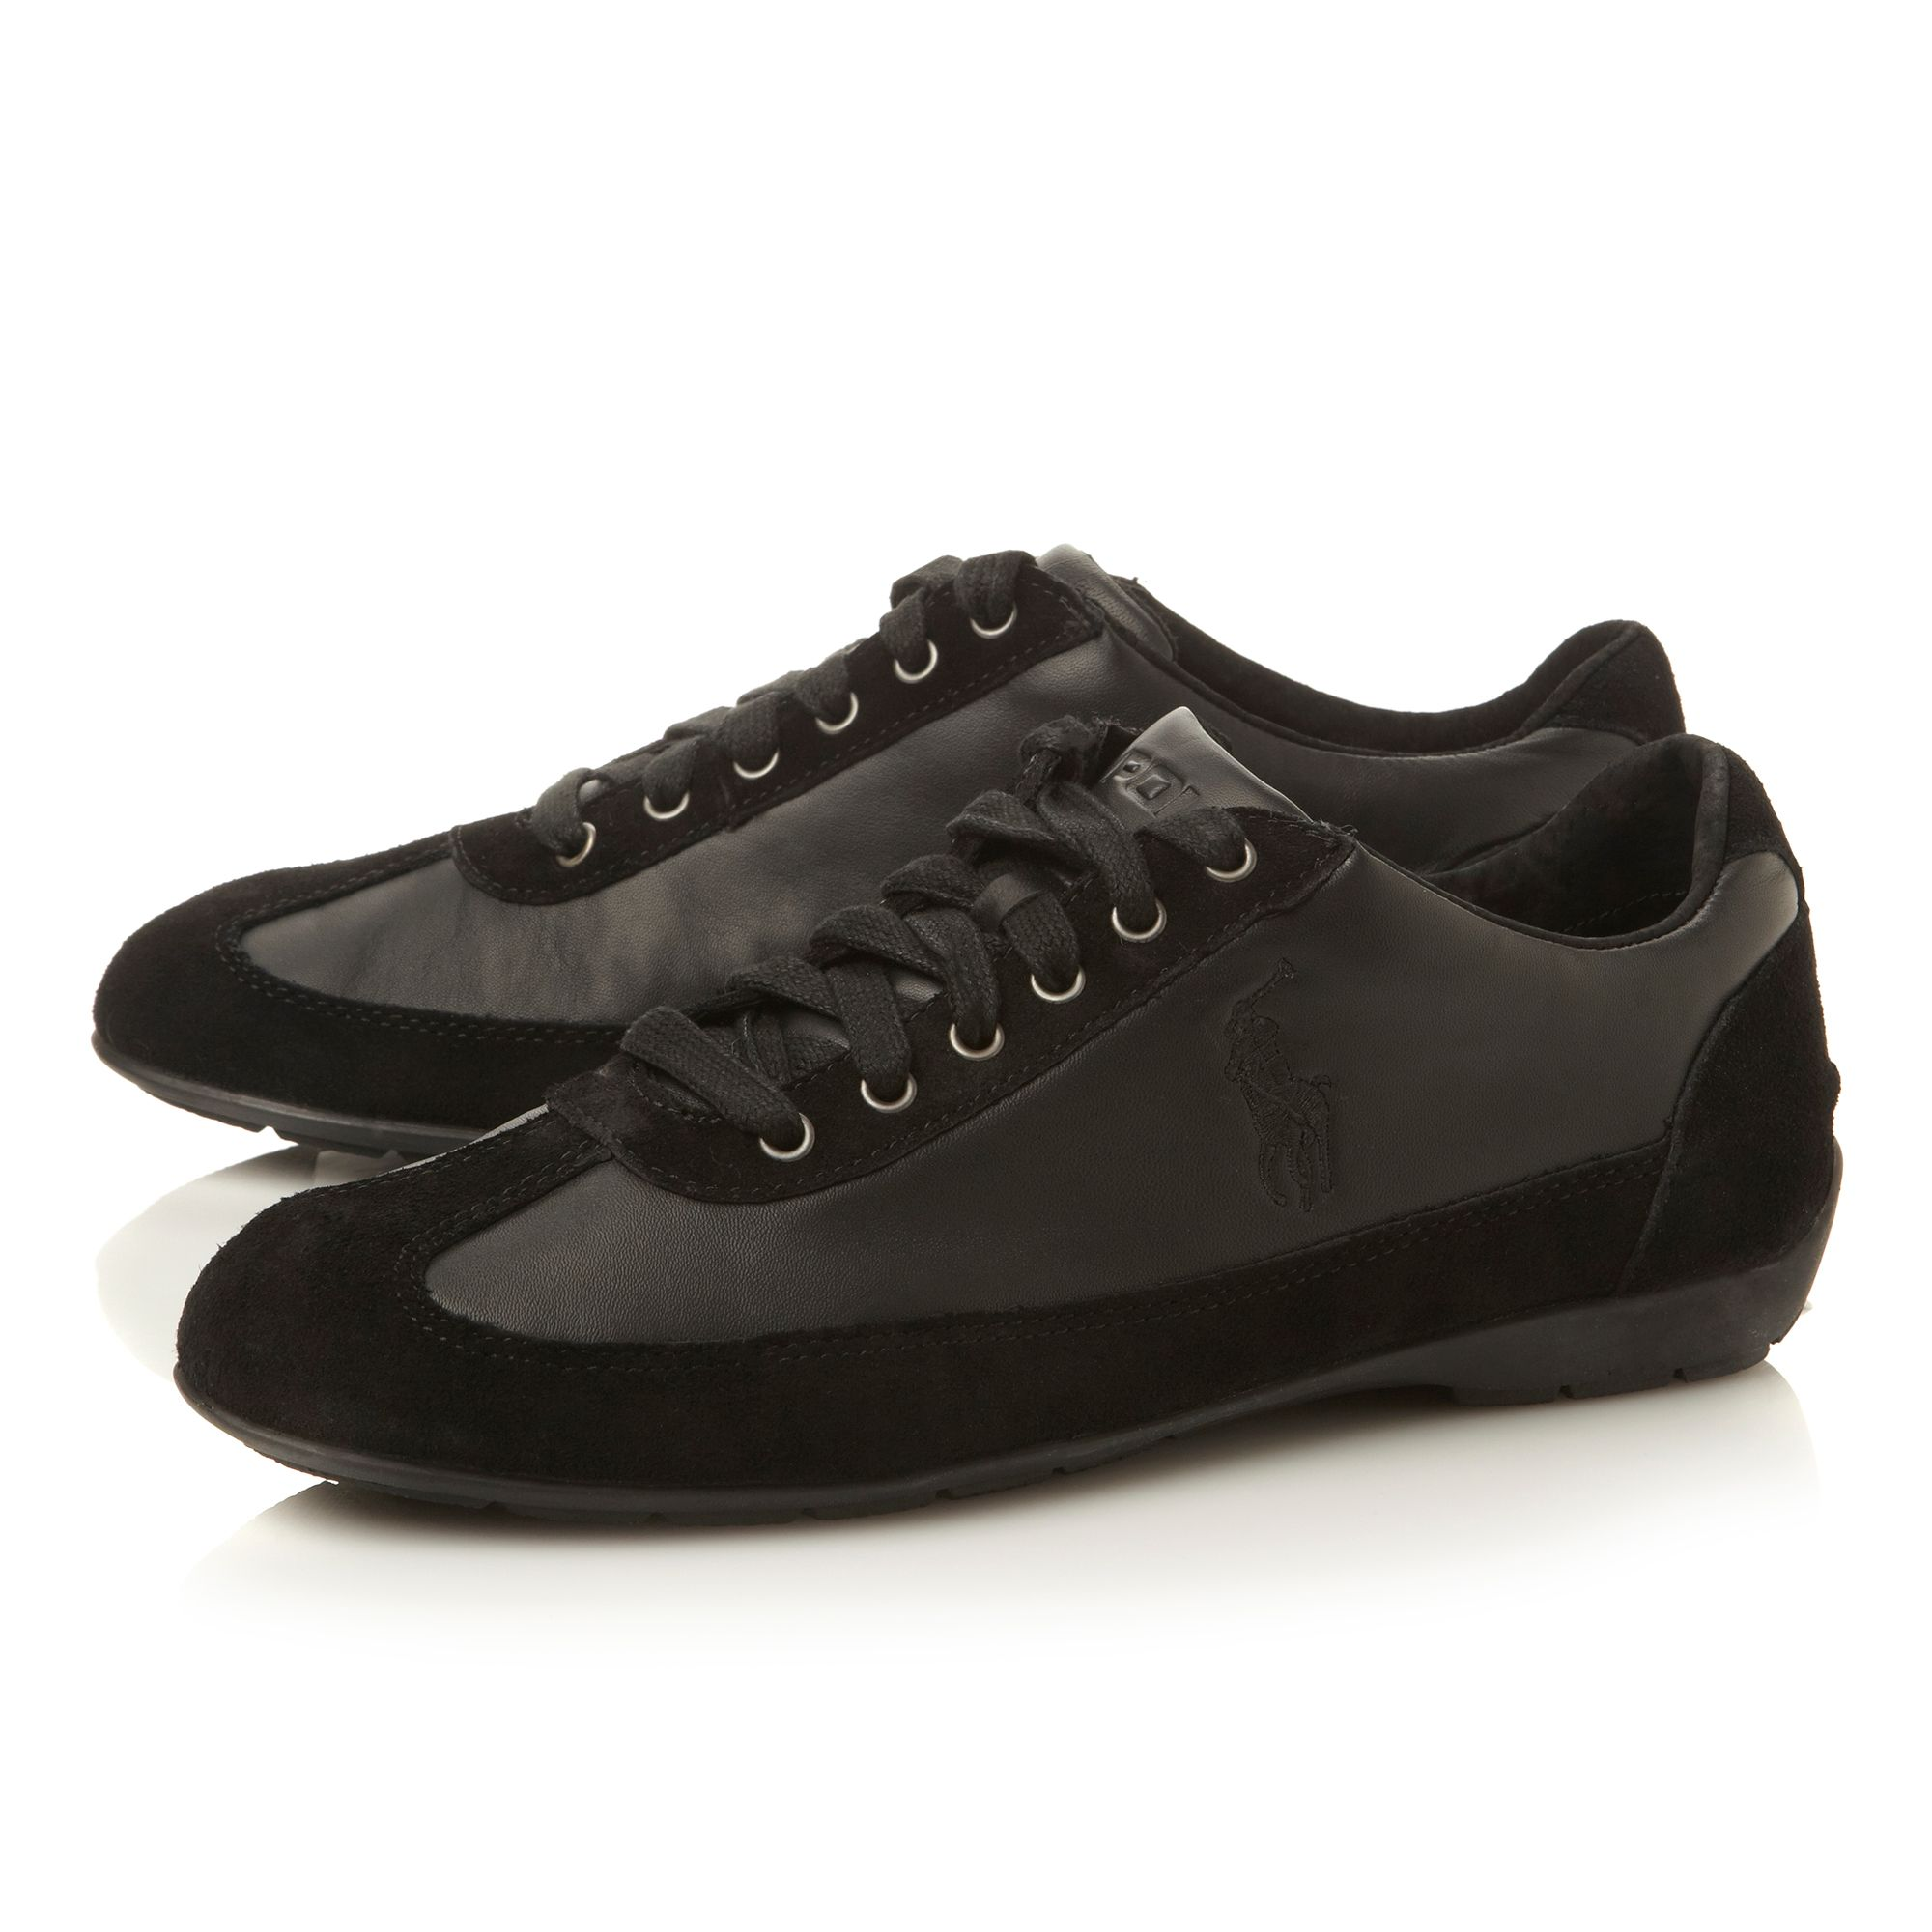 Lisson lace up sleek wingtip sneakers